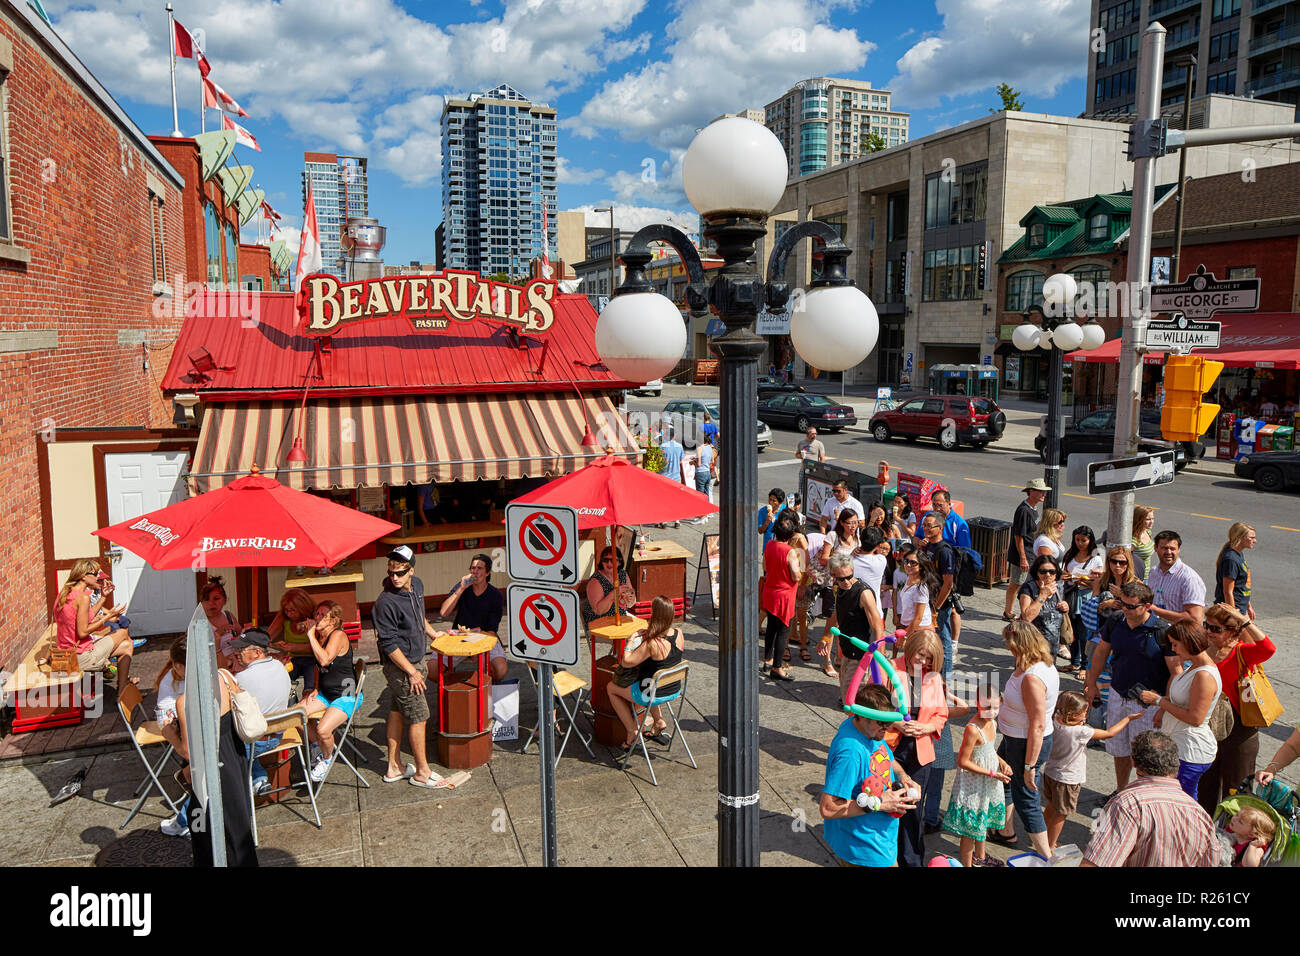 BeaverTails Pastry stand Beaver Tails on George Street in Ottawa Canada - Stock Image